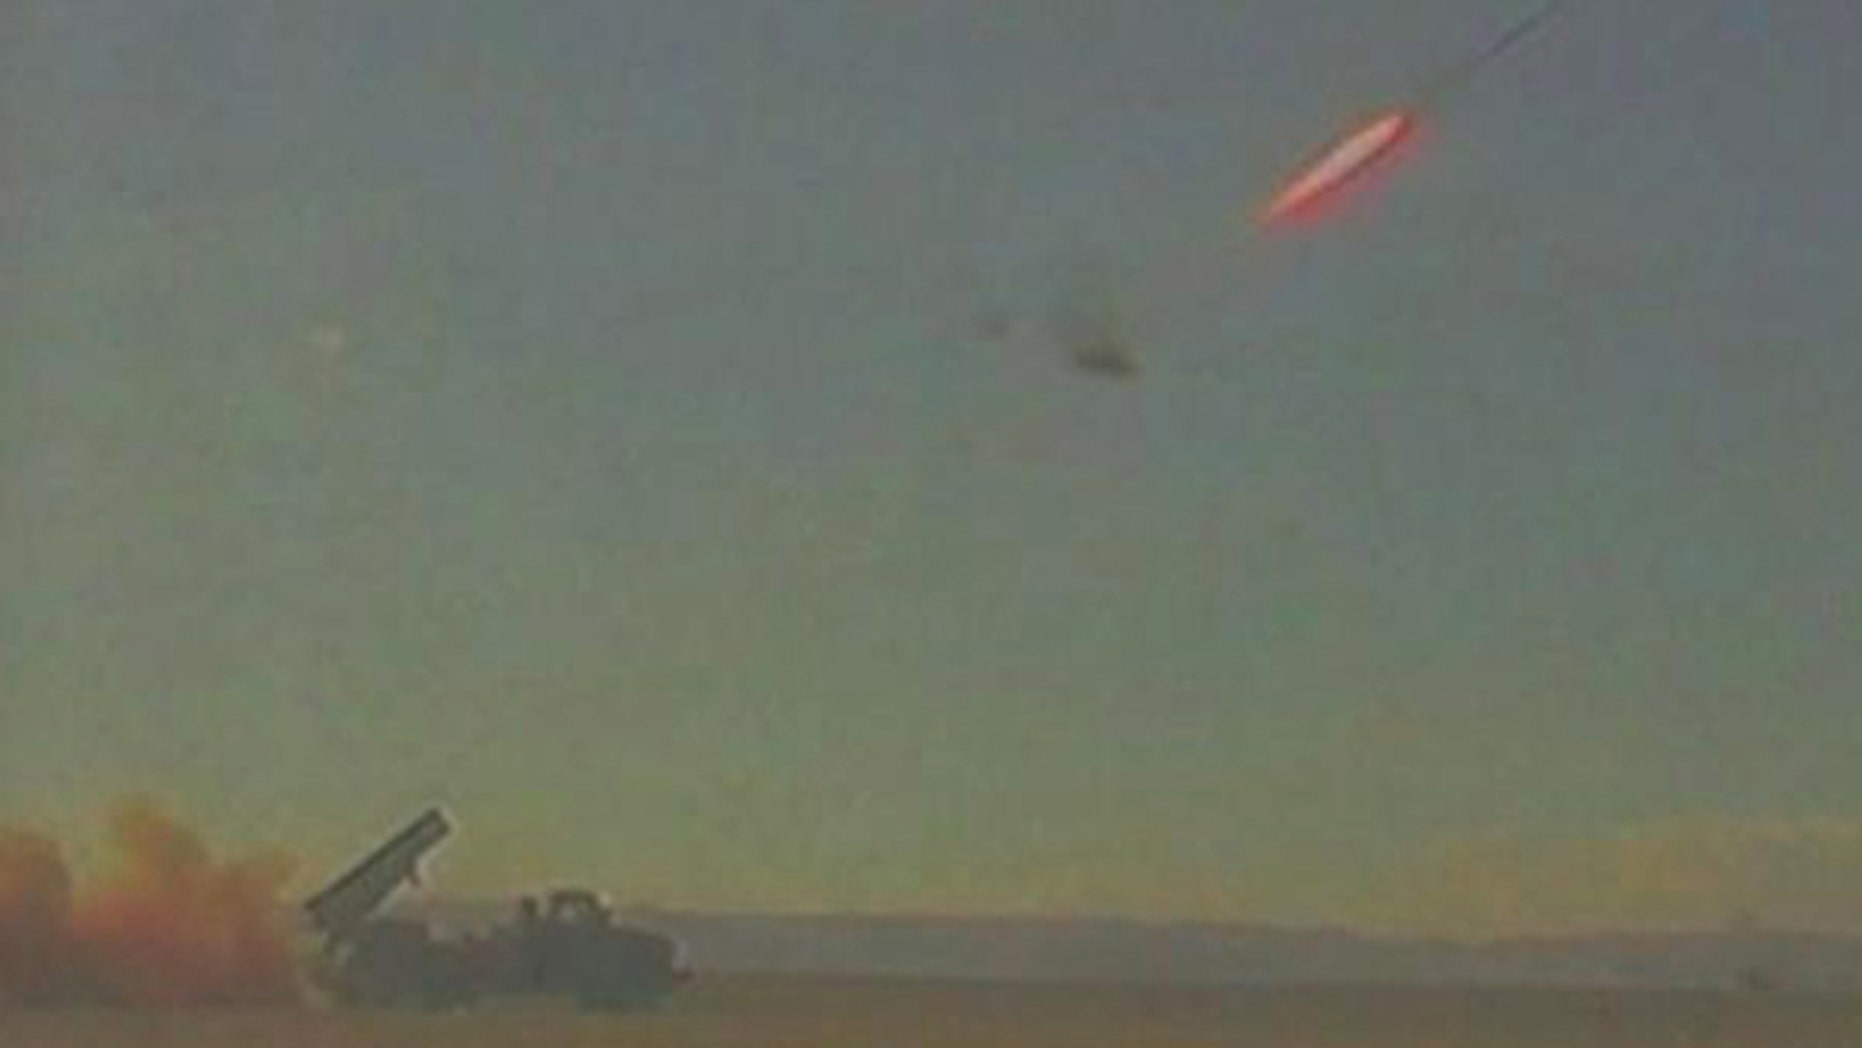 File photo: In this photo provided by Israeli Defence Ministry shows a rocket fired by the Iron Dome system during a test fire somewhere in southern Israel.